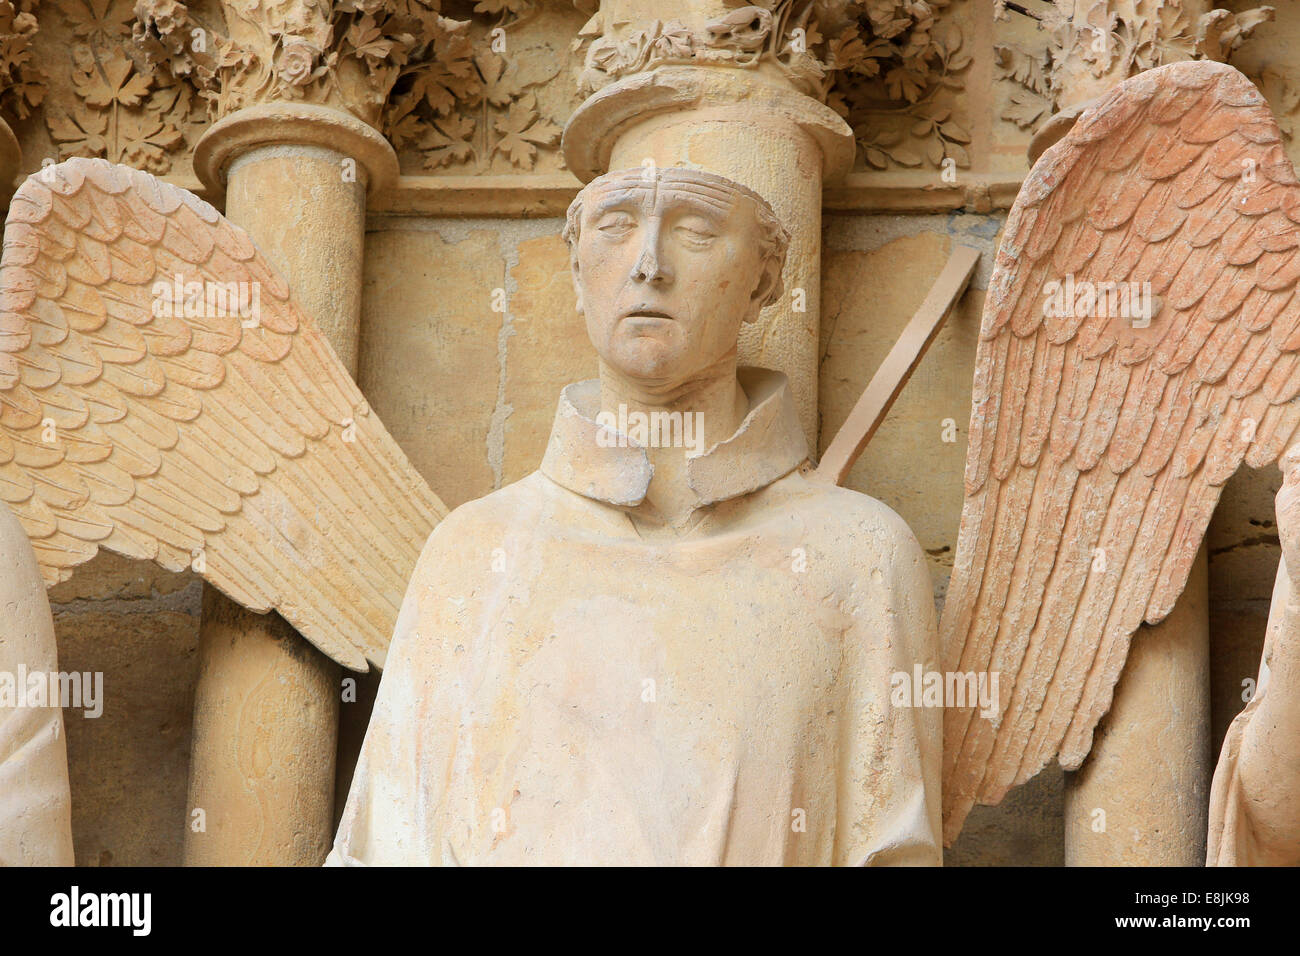 St. Nicaise (shown with the top of the head removed) or Albert of Louvain, Bishop of Liege, beheaded at Reims in - Stock Image